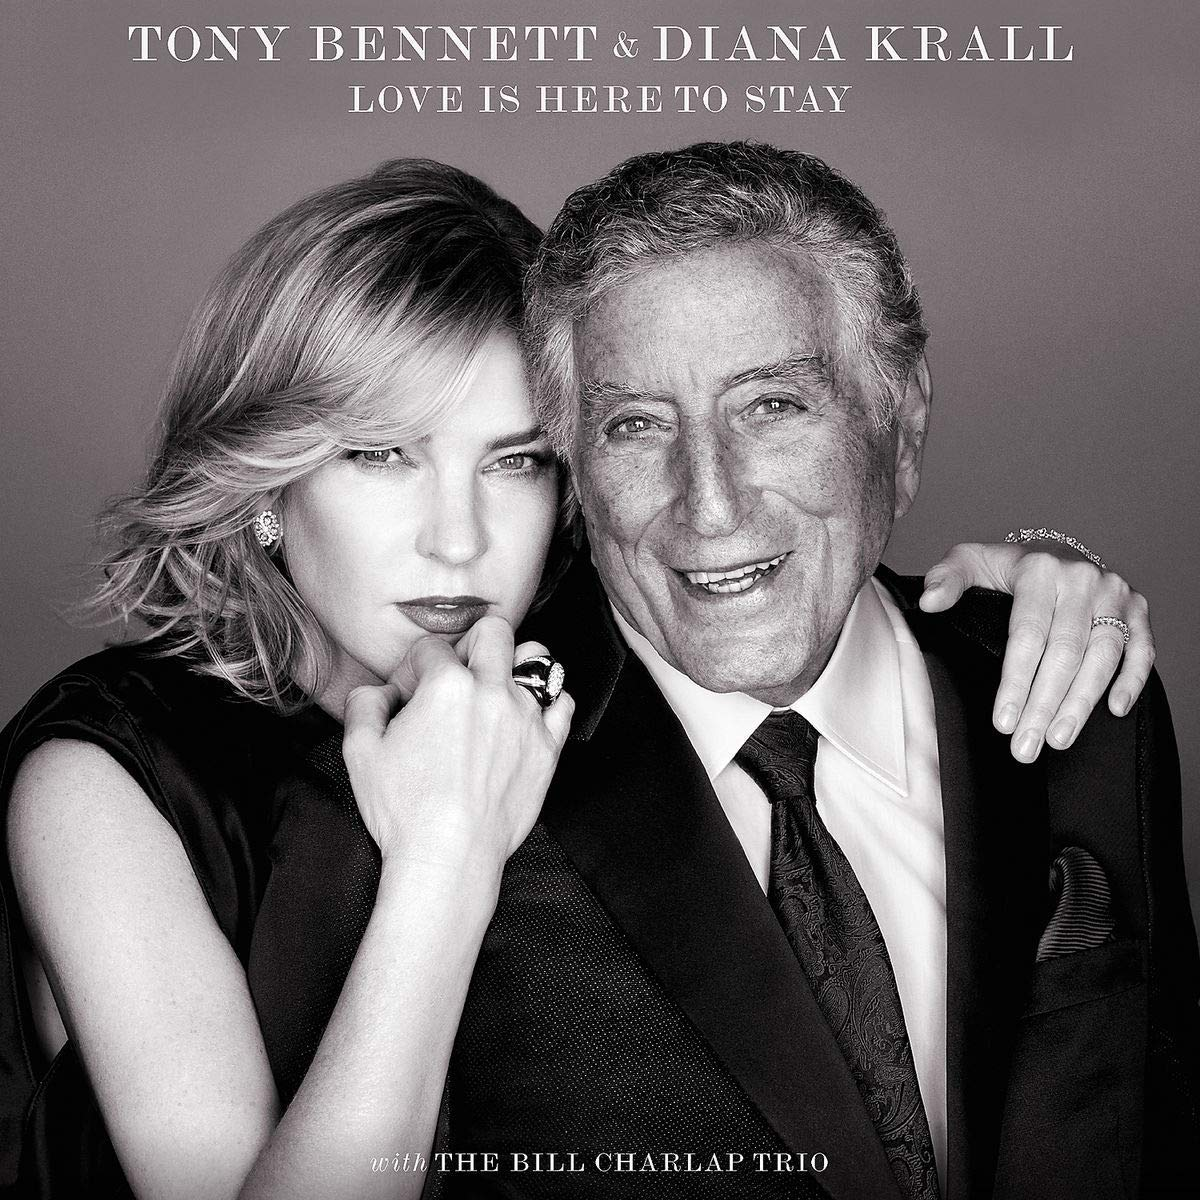 Тони Беннетт,Дайана Кролл Tony Bennett & Diana Krall. Love Is Here To Stay (LP) дайана кролл diana krall the look of love